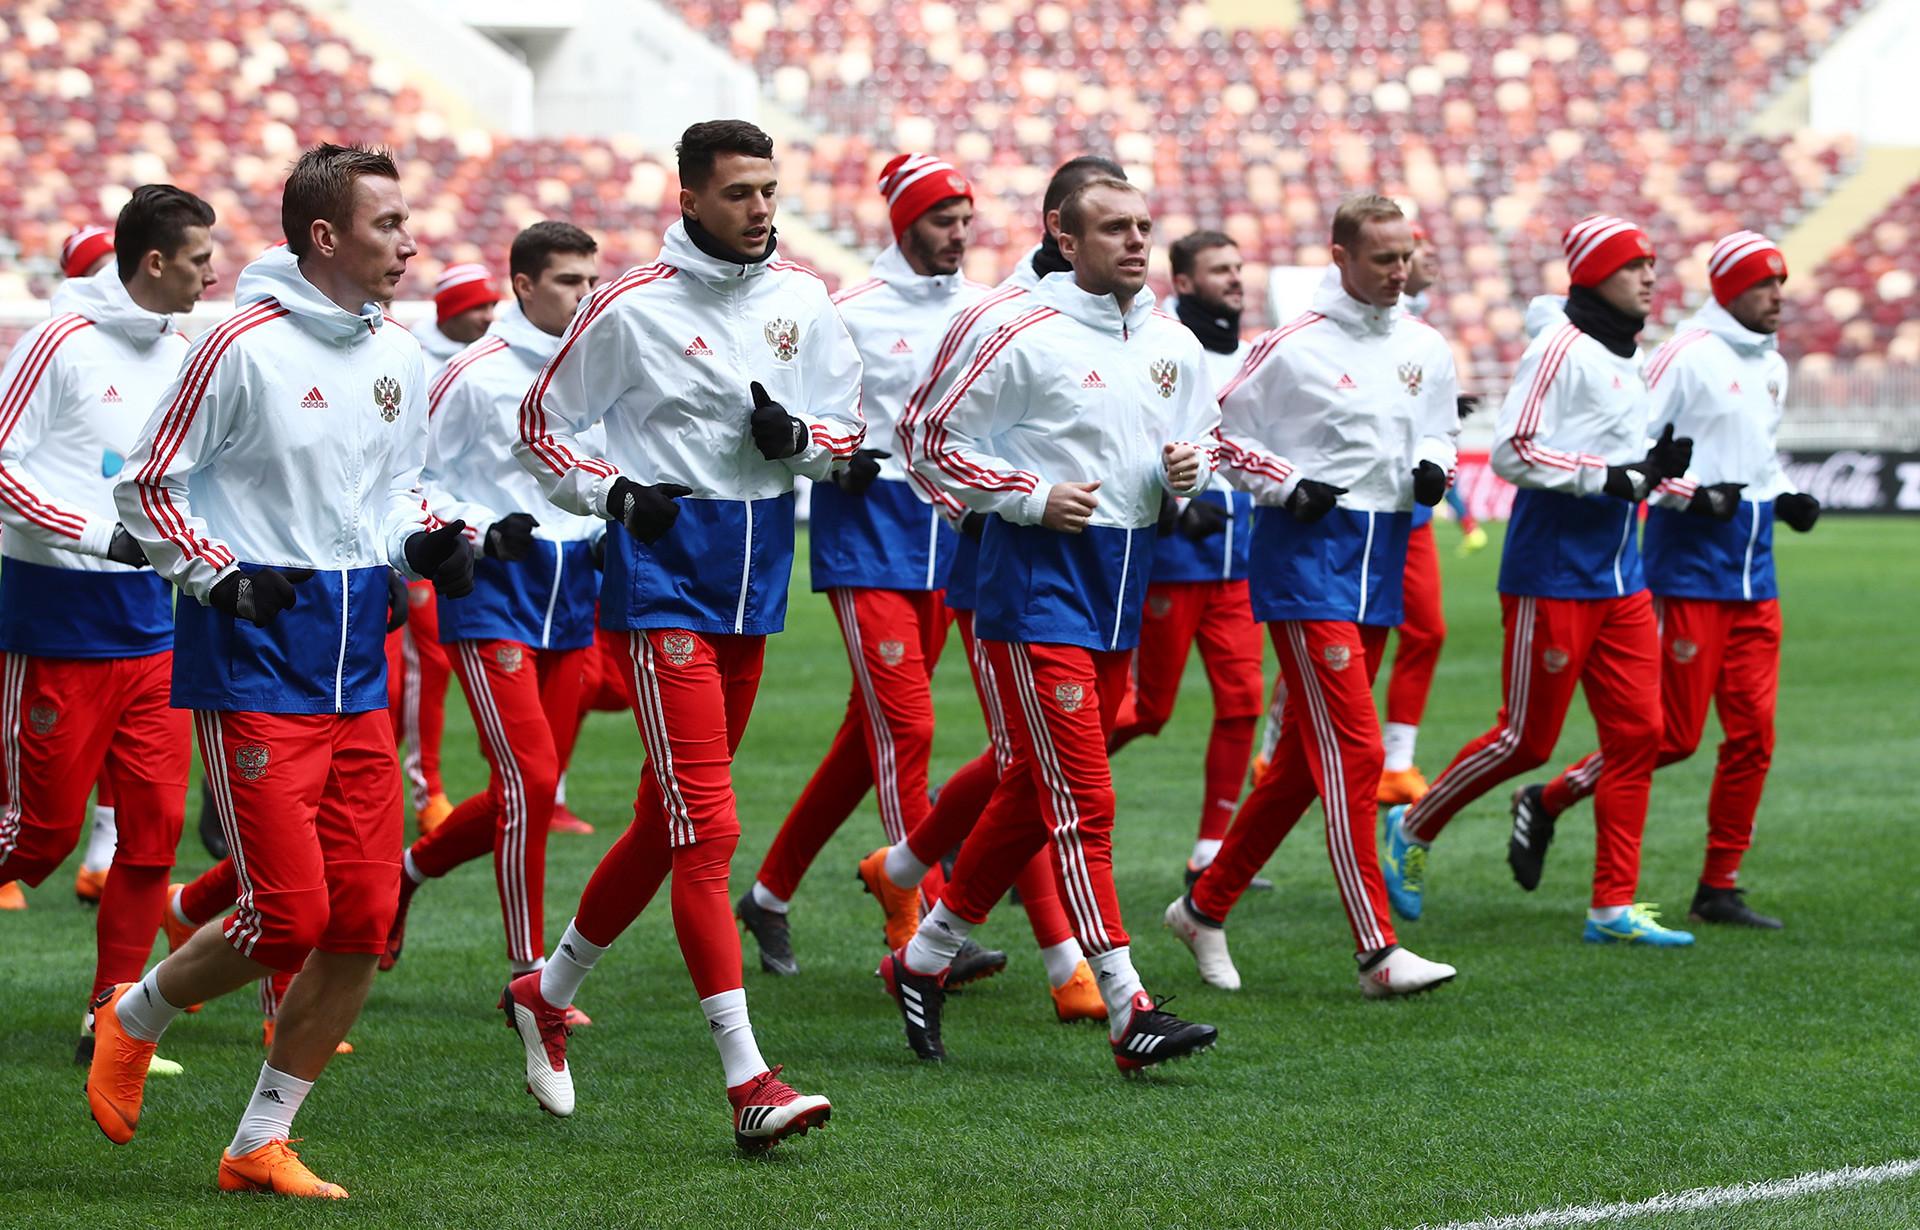 Russian team training before football friendly against Brazil, March 2018.